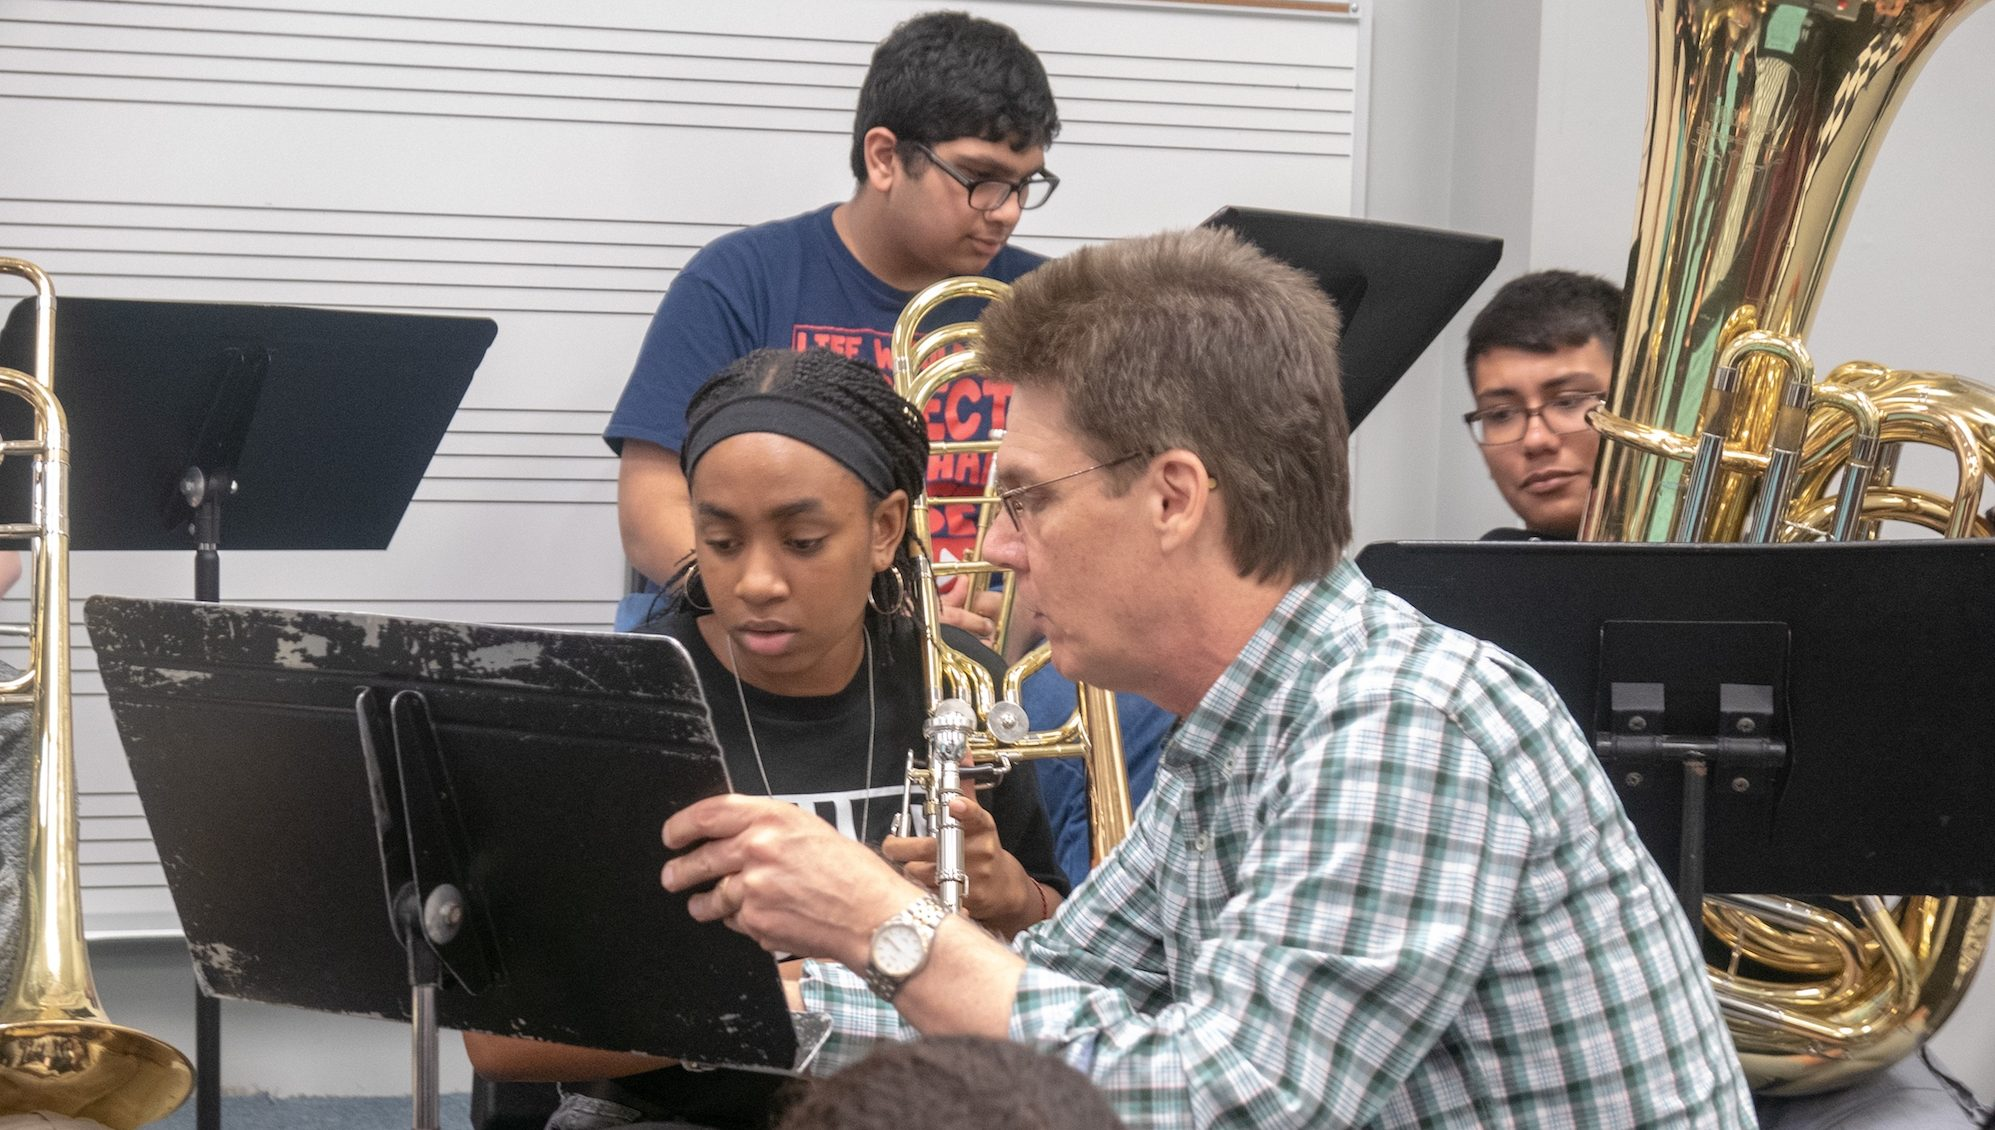 Dr Jb Dyas Teaching At Kinder Hspva In Houston 9 18 Copy 2 Hancock Institute Of Jazz